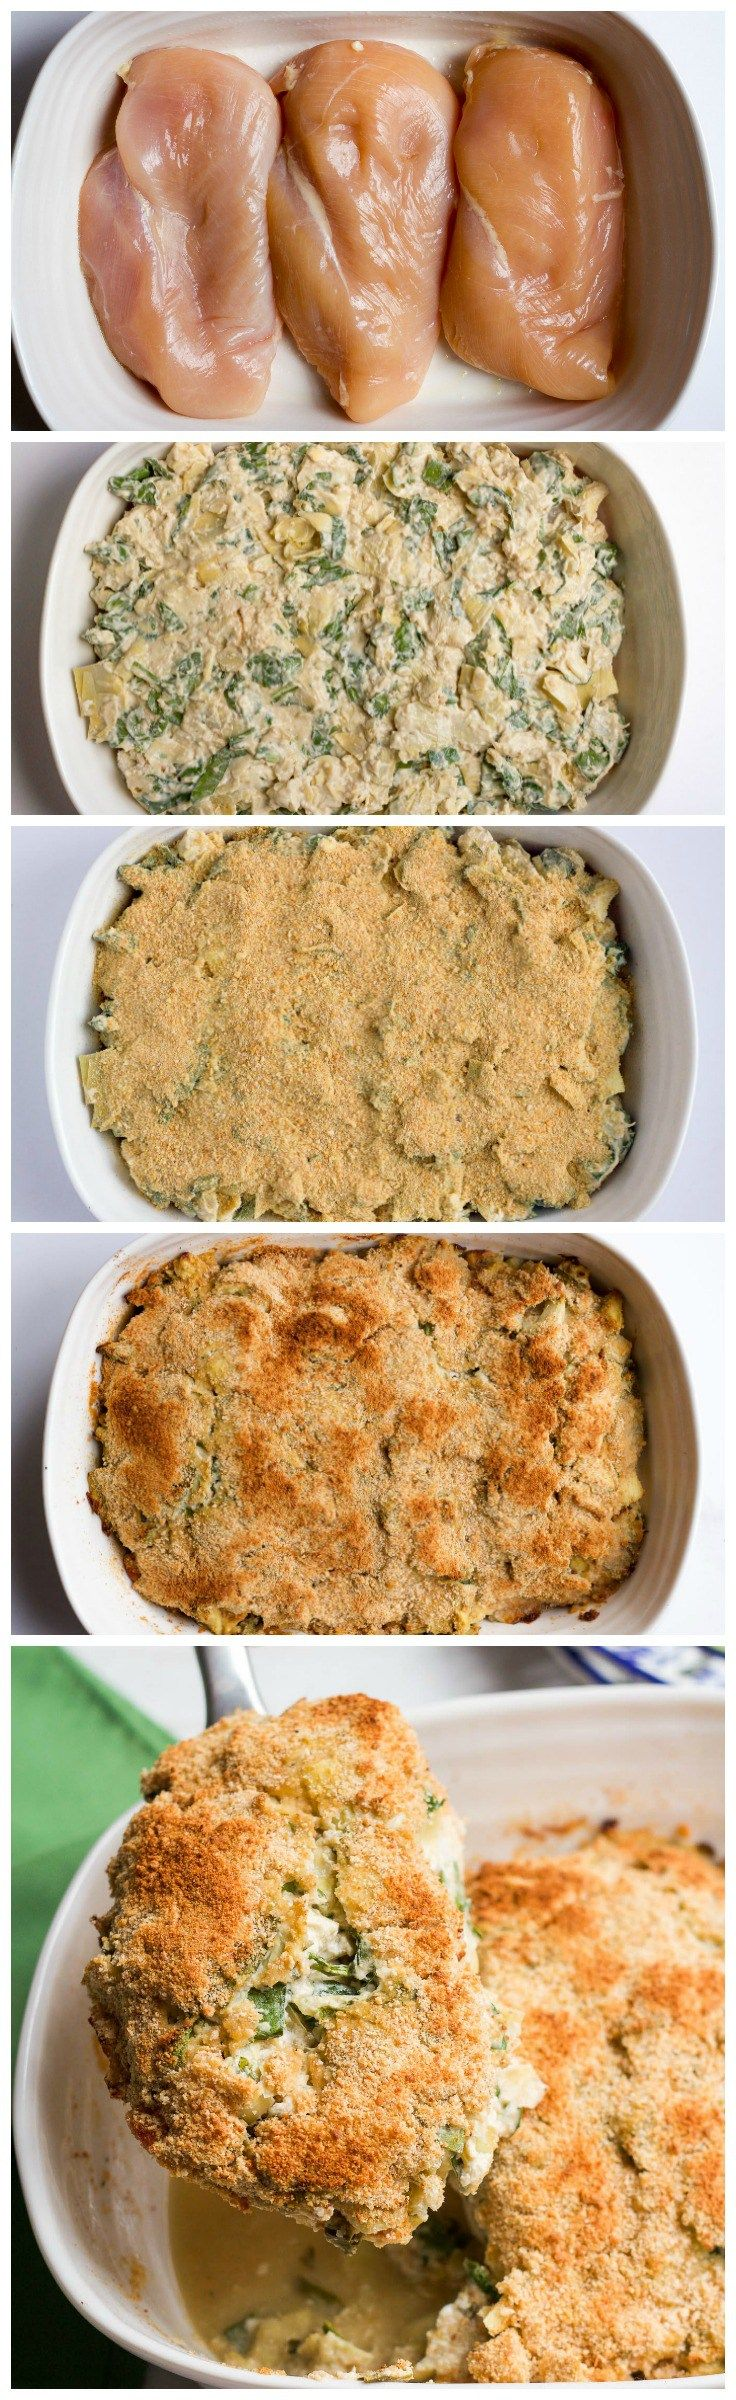 Super creamy (but lightened up) spinach artichoke chicken casserole - just 10 minutes to prep! Makes a great weeknight dinner or meal for company! | FamilyFoodontheTable.com (Chicken Casserole)